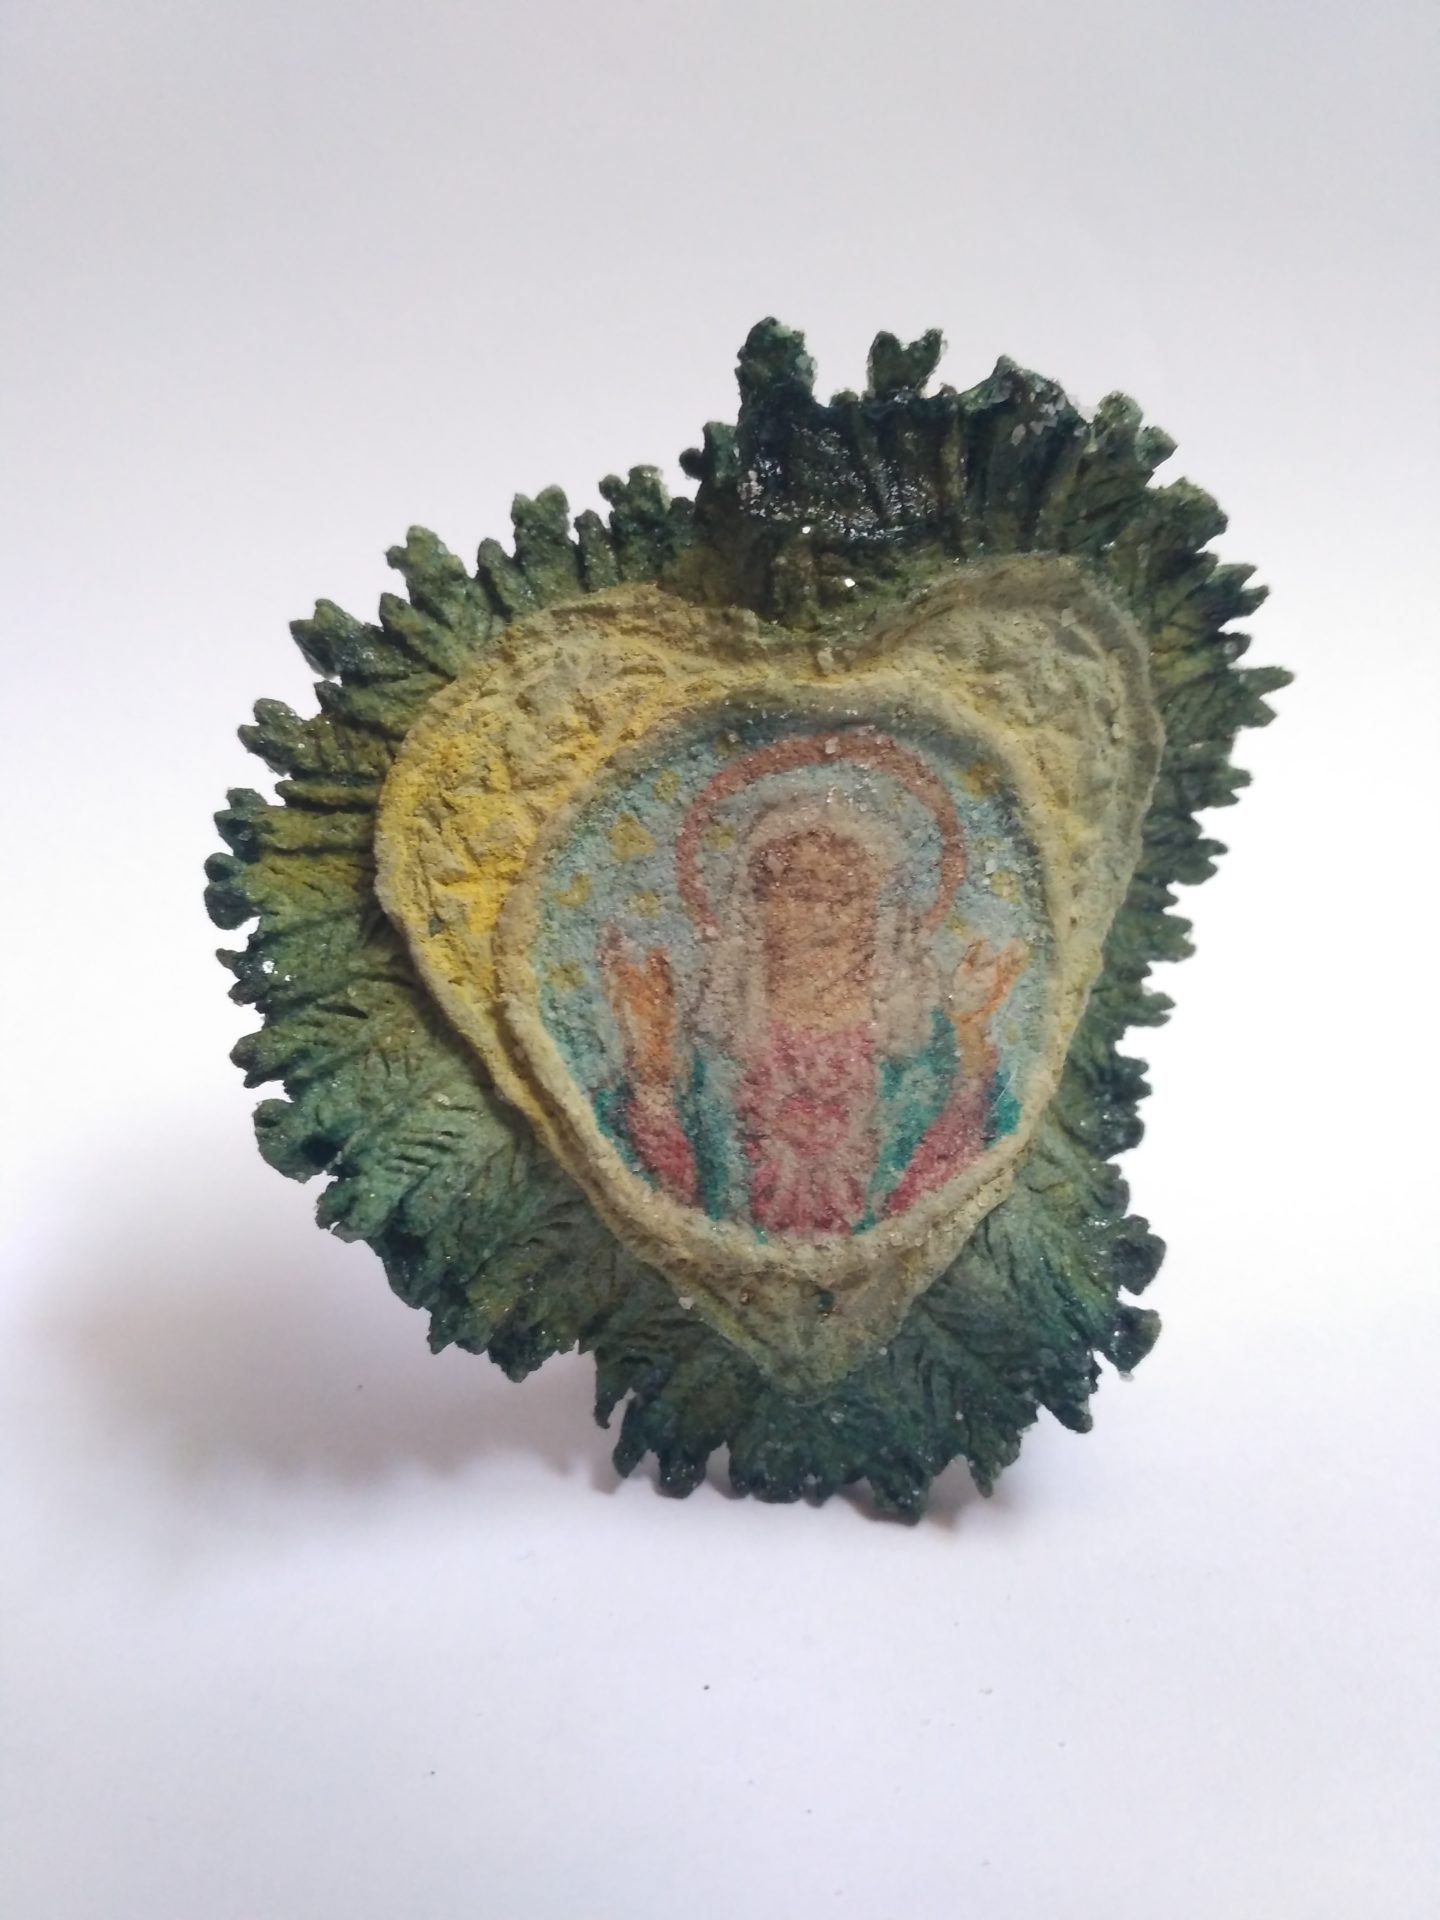 potato scupltures - Heart of Jesus (3)